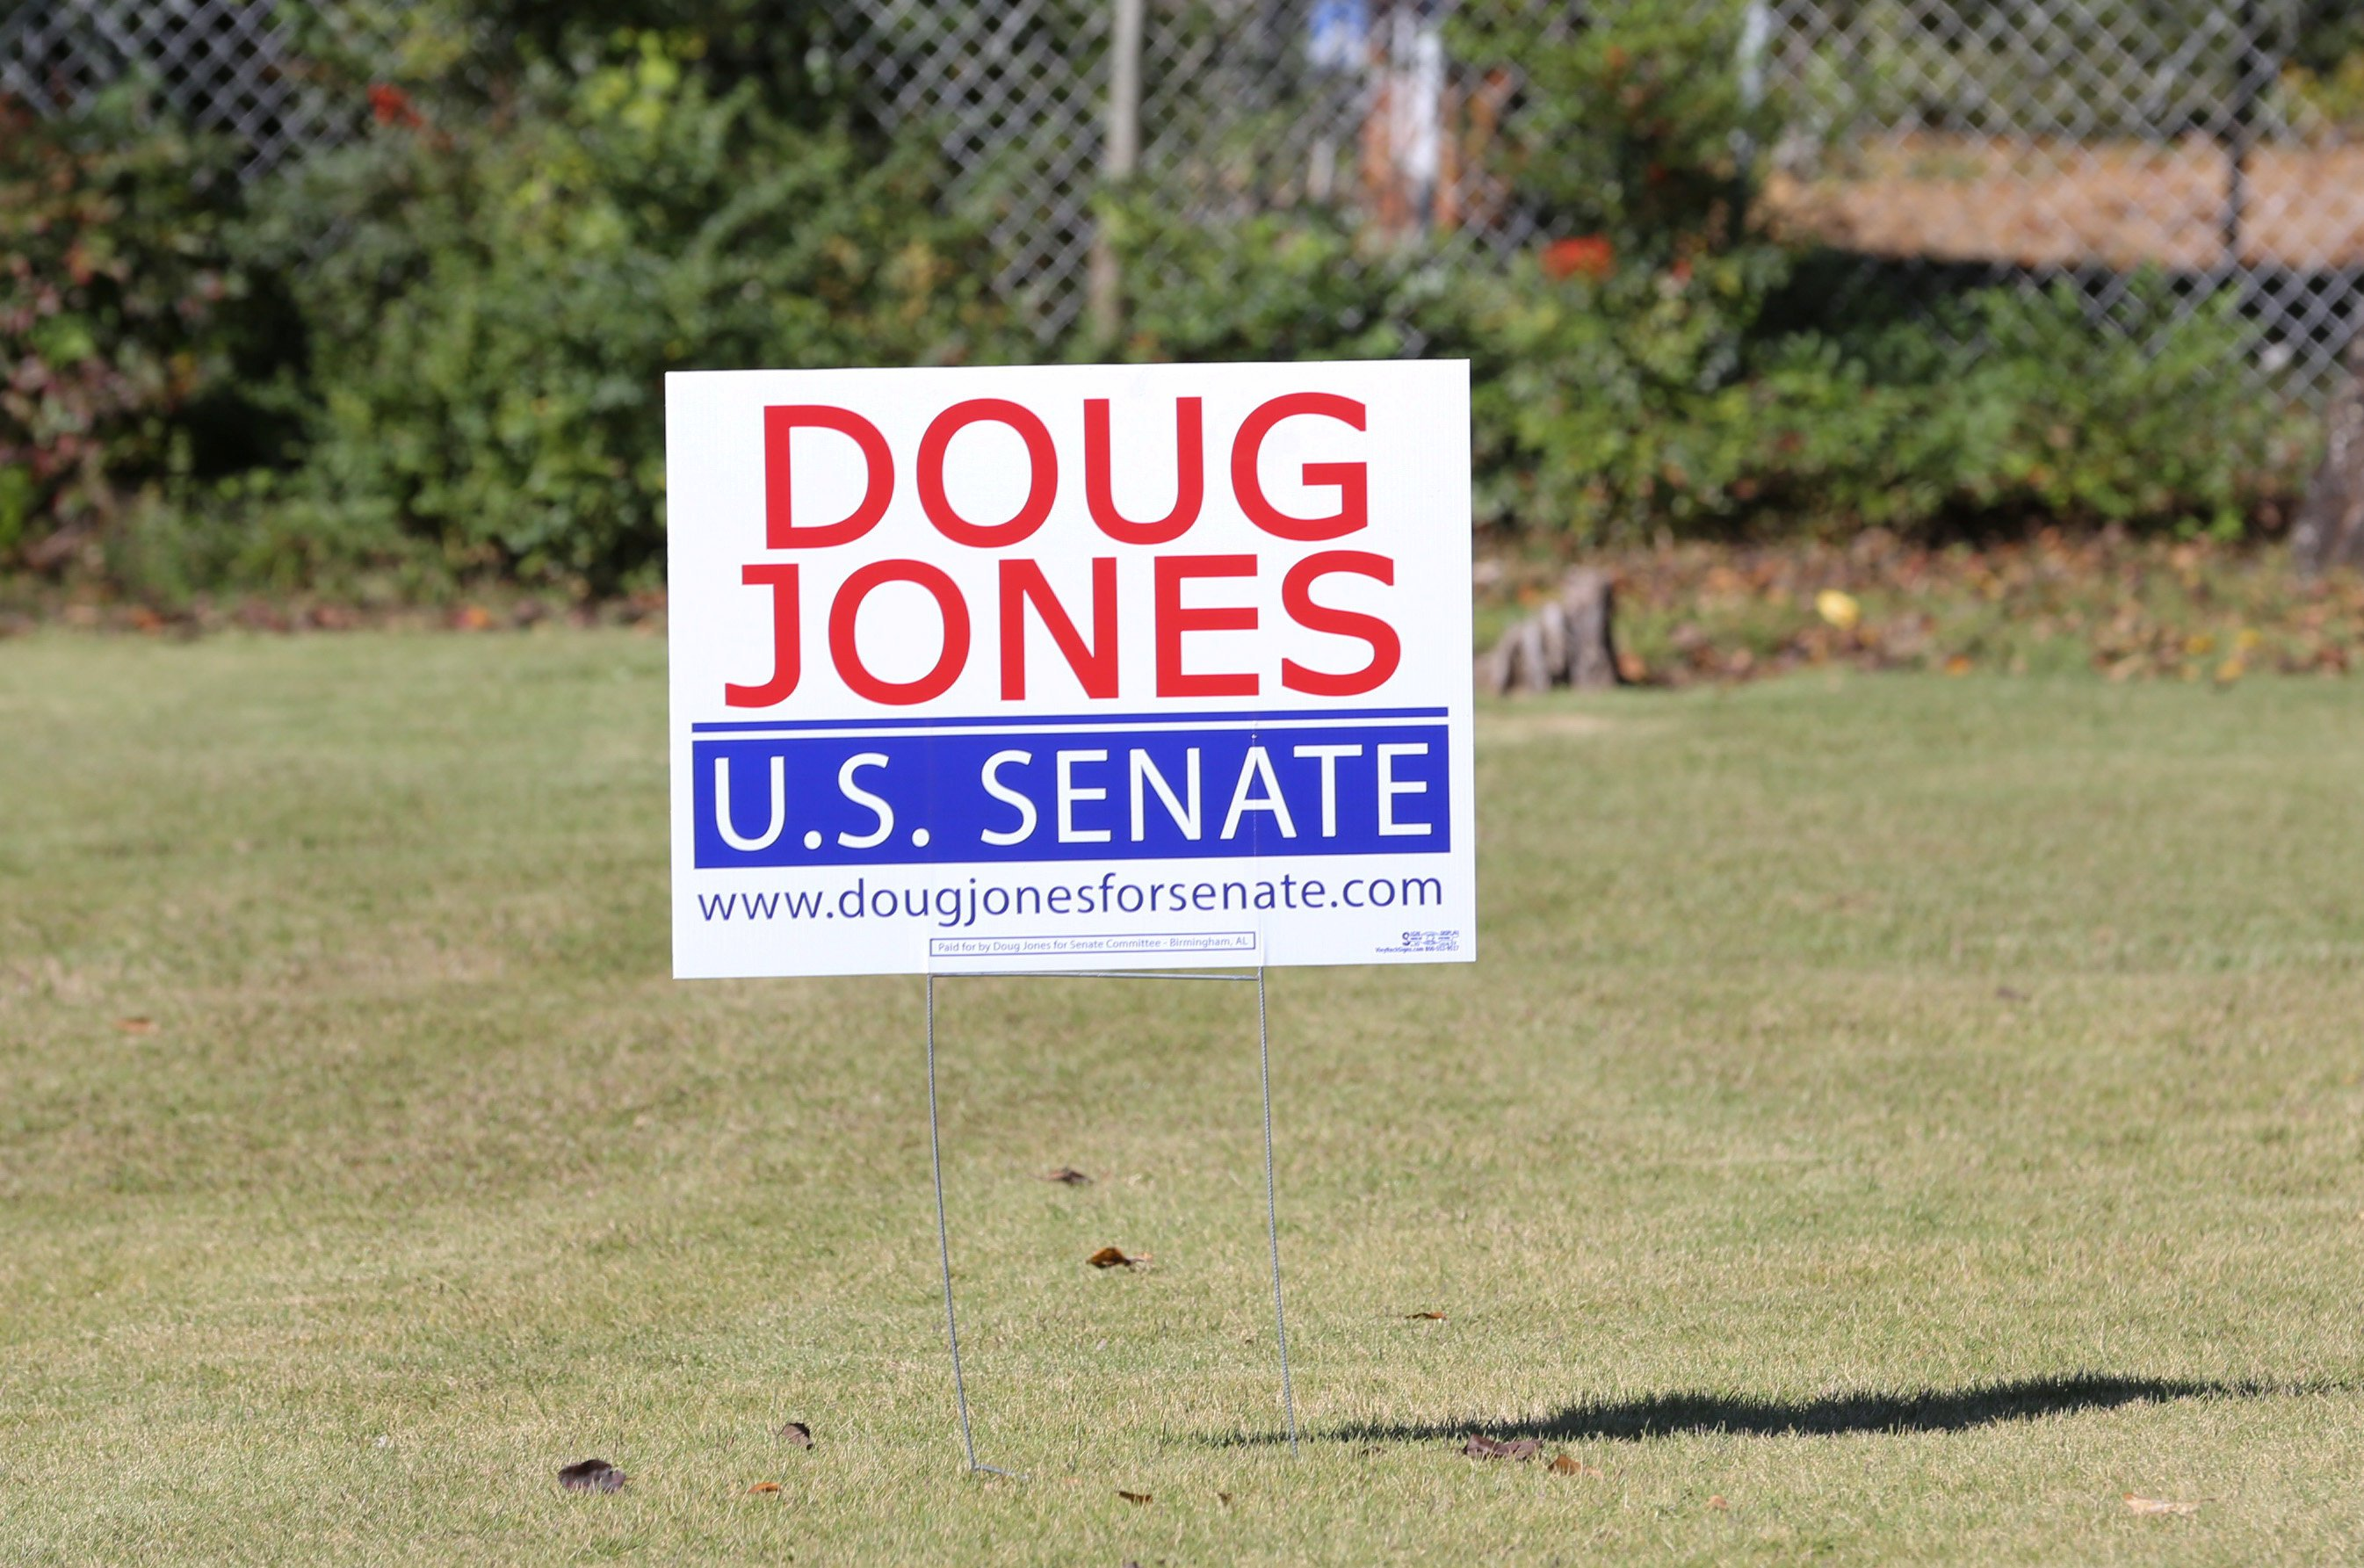 Senate Democratic candidate Doug Jones' election sign is posted around the Jefferson County, Alabama area prior to the upcoming special election against Republican candidate Judge Roy Moore in Hoover, Alabama on November 10, 2017.